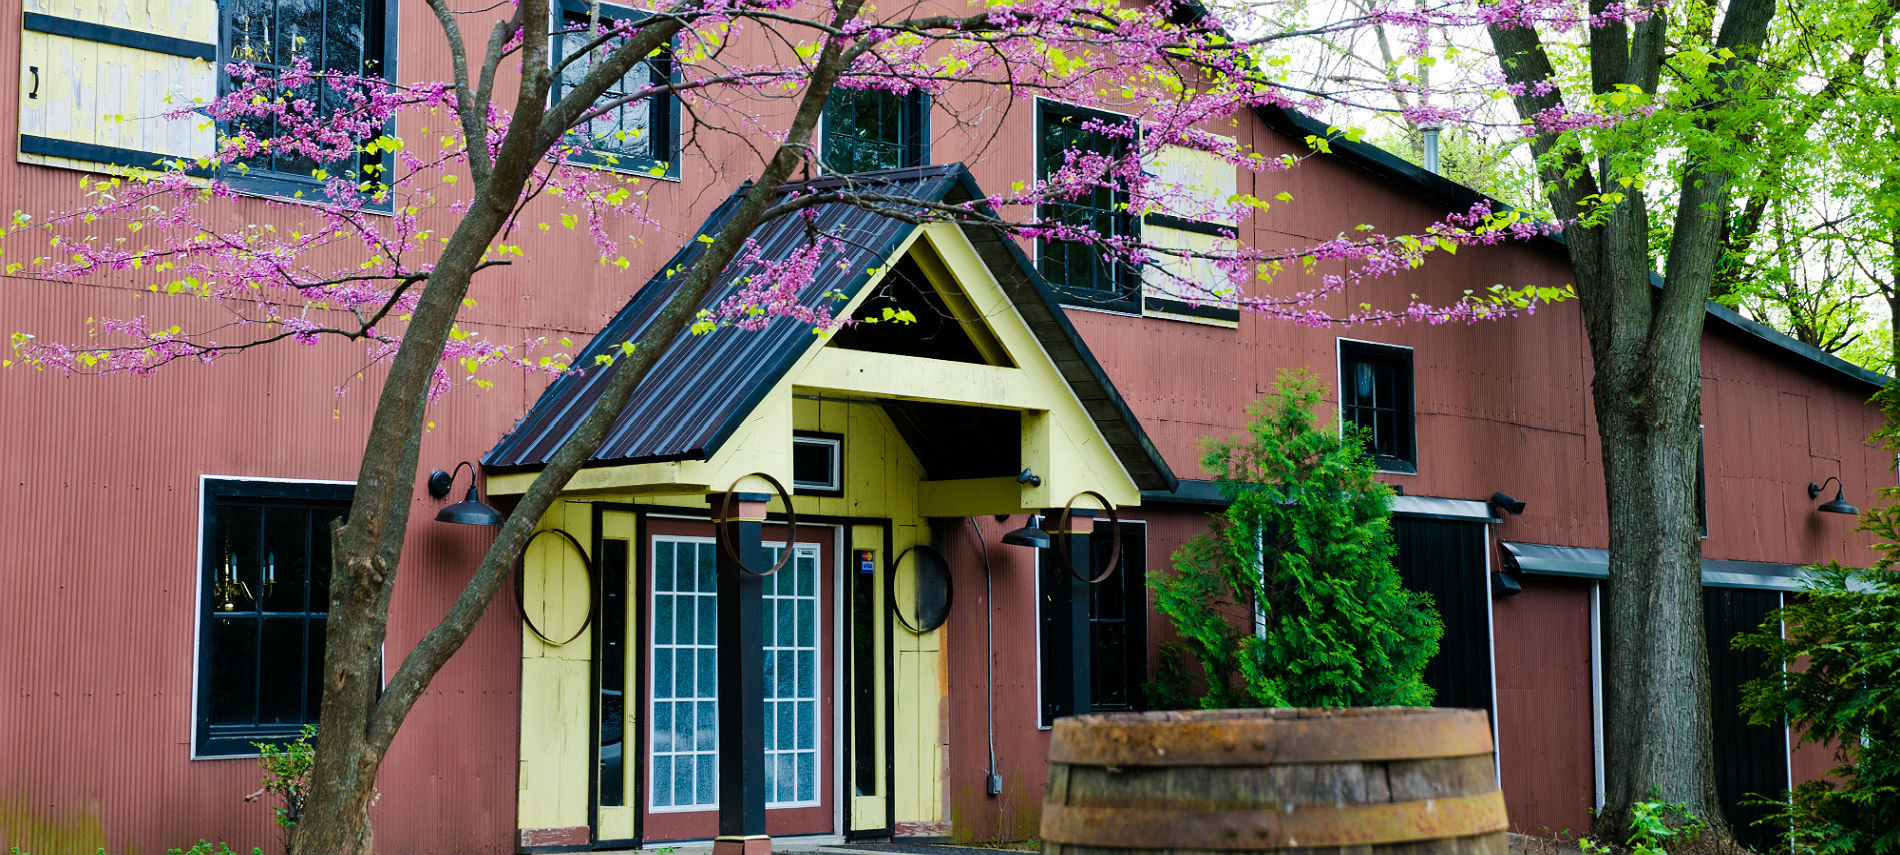 Bourbon Manor B&B's Bourbon Bar Lounge with red facade, dark trim and white entry and shutters and blooming foreground trees